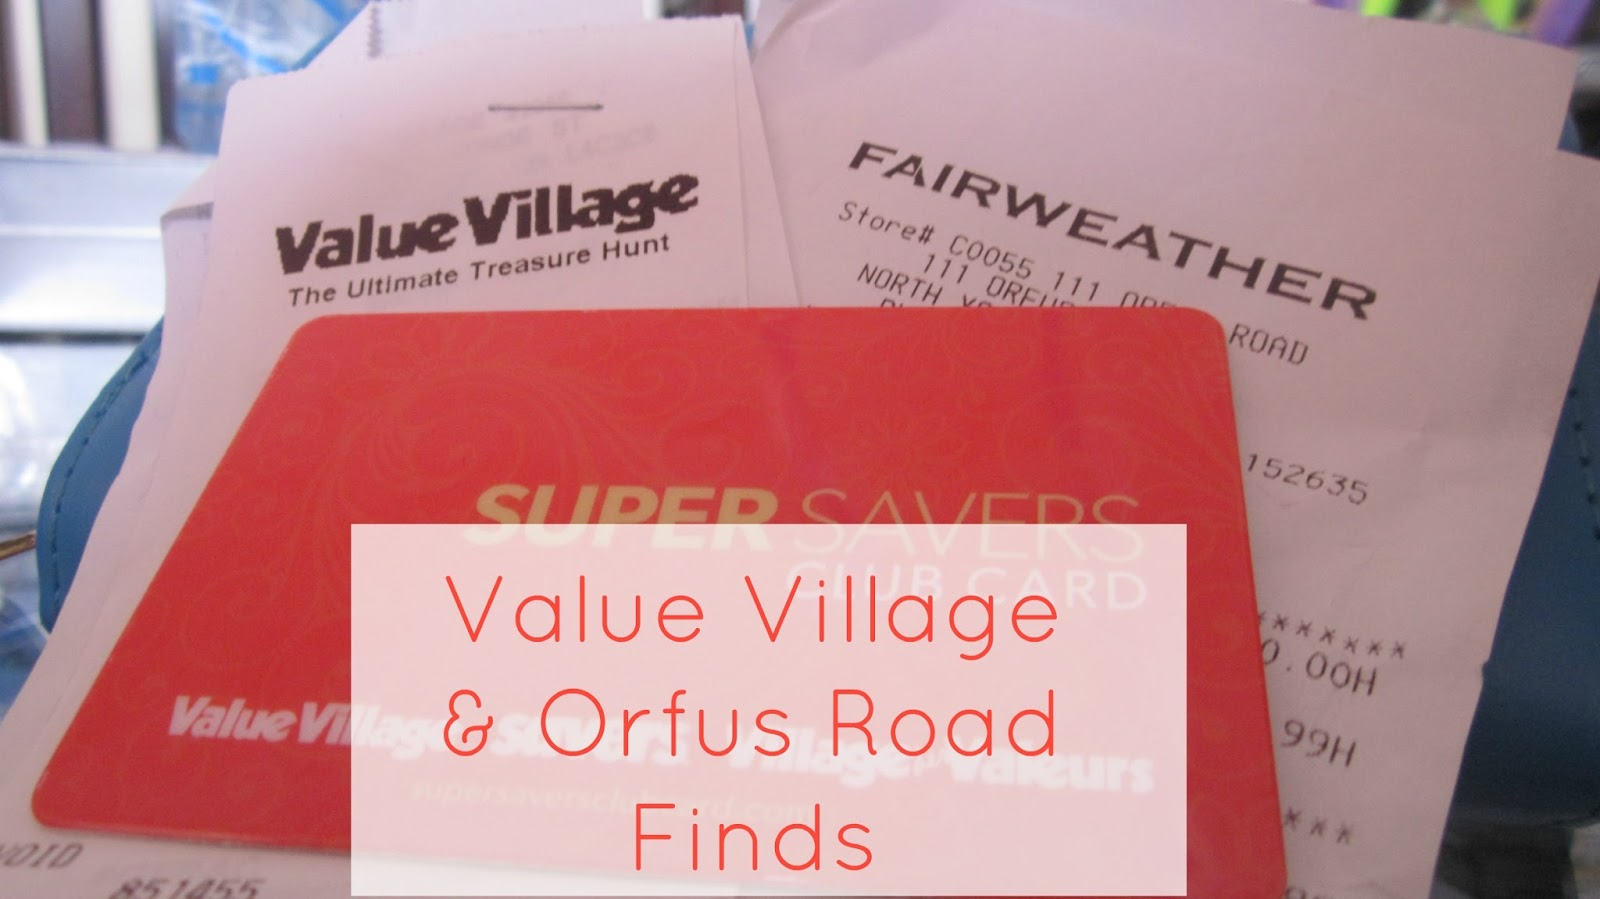 value village and orfus road